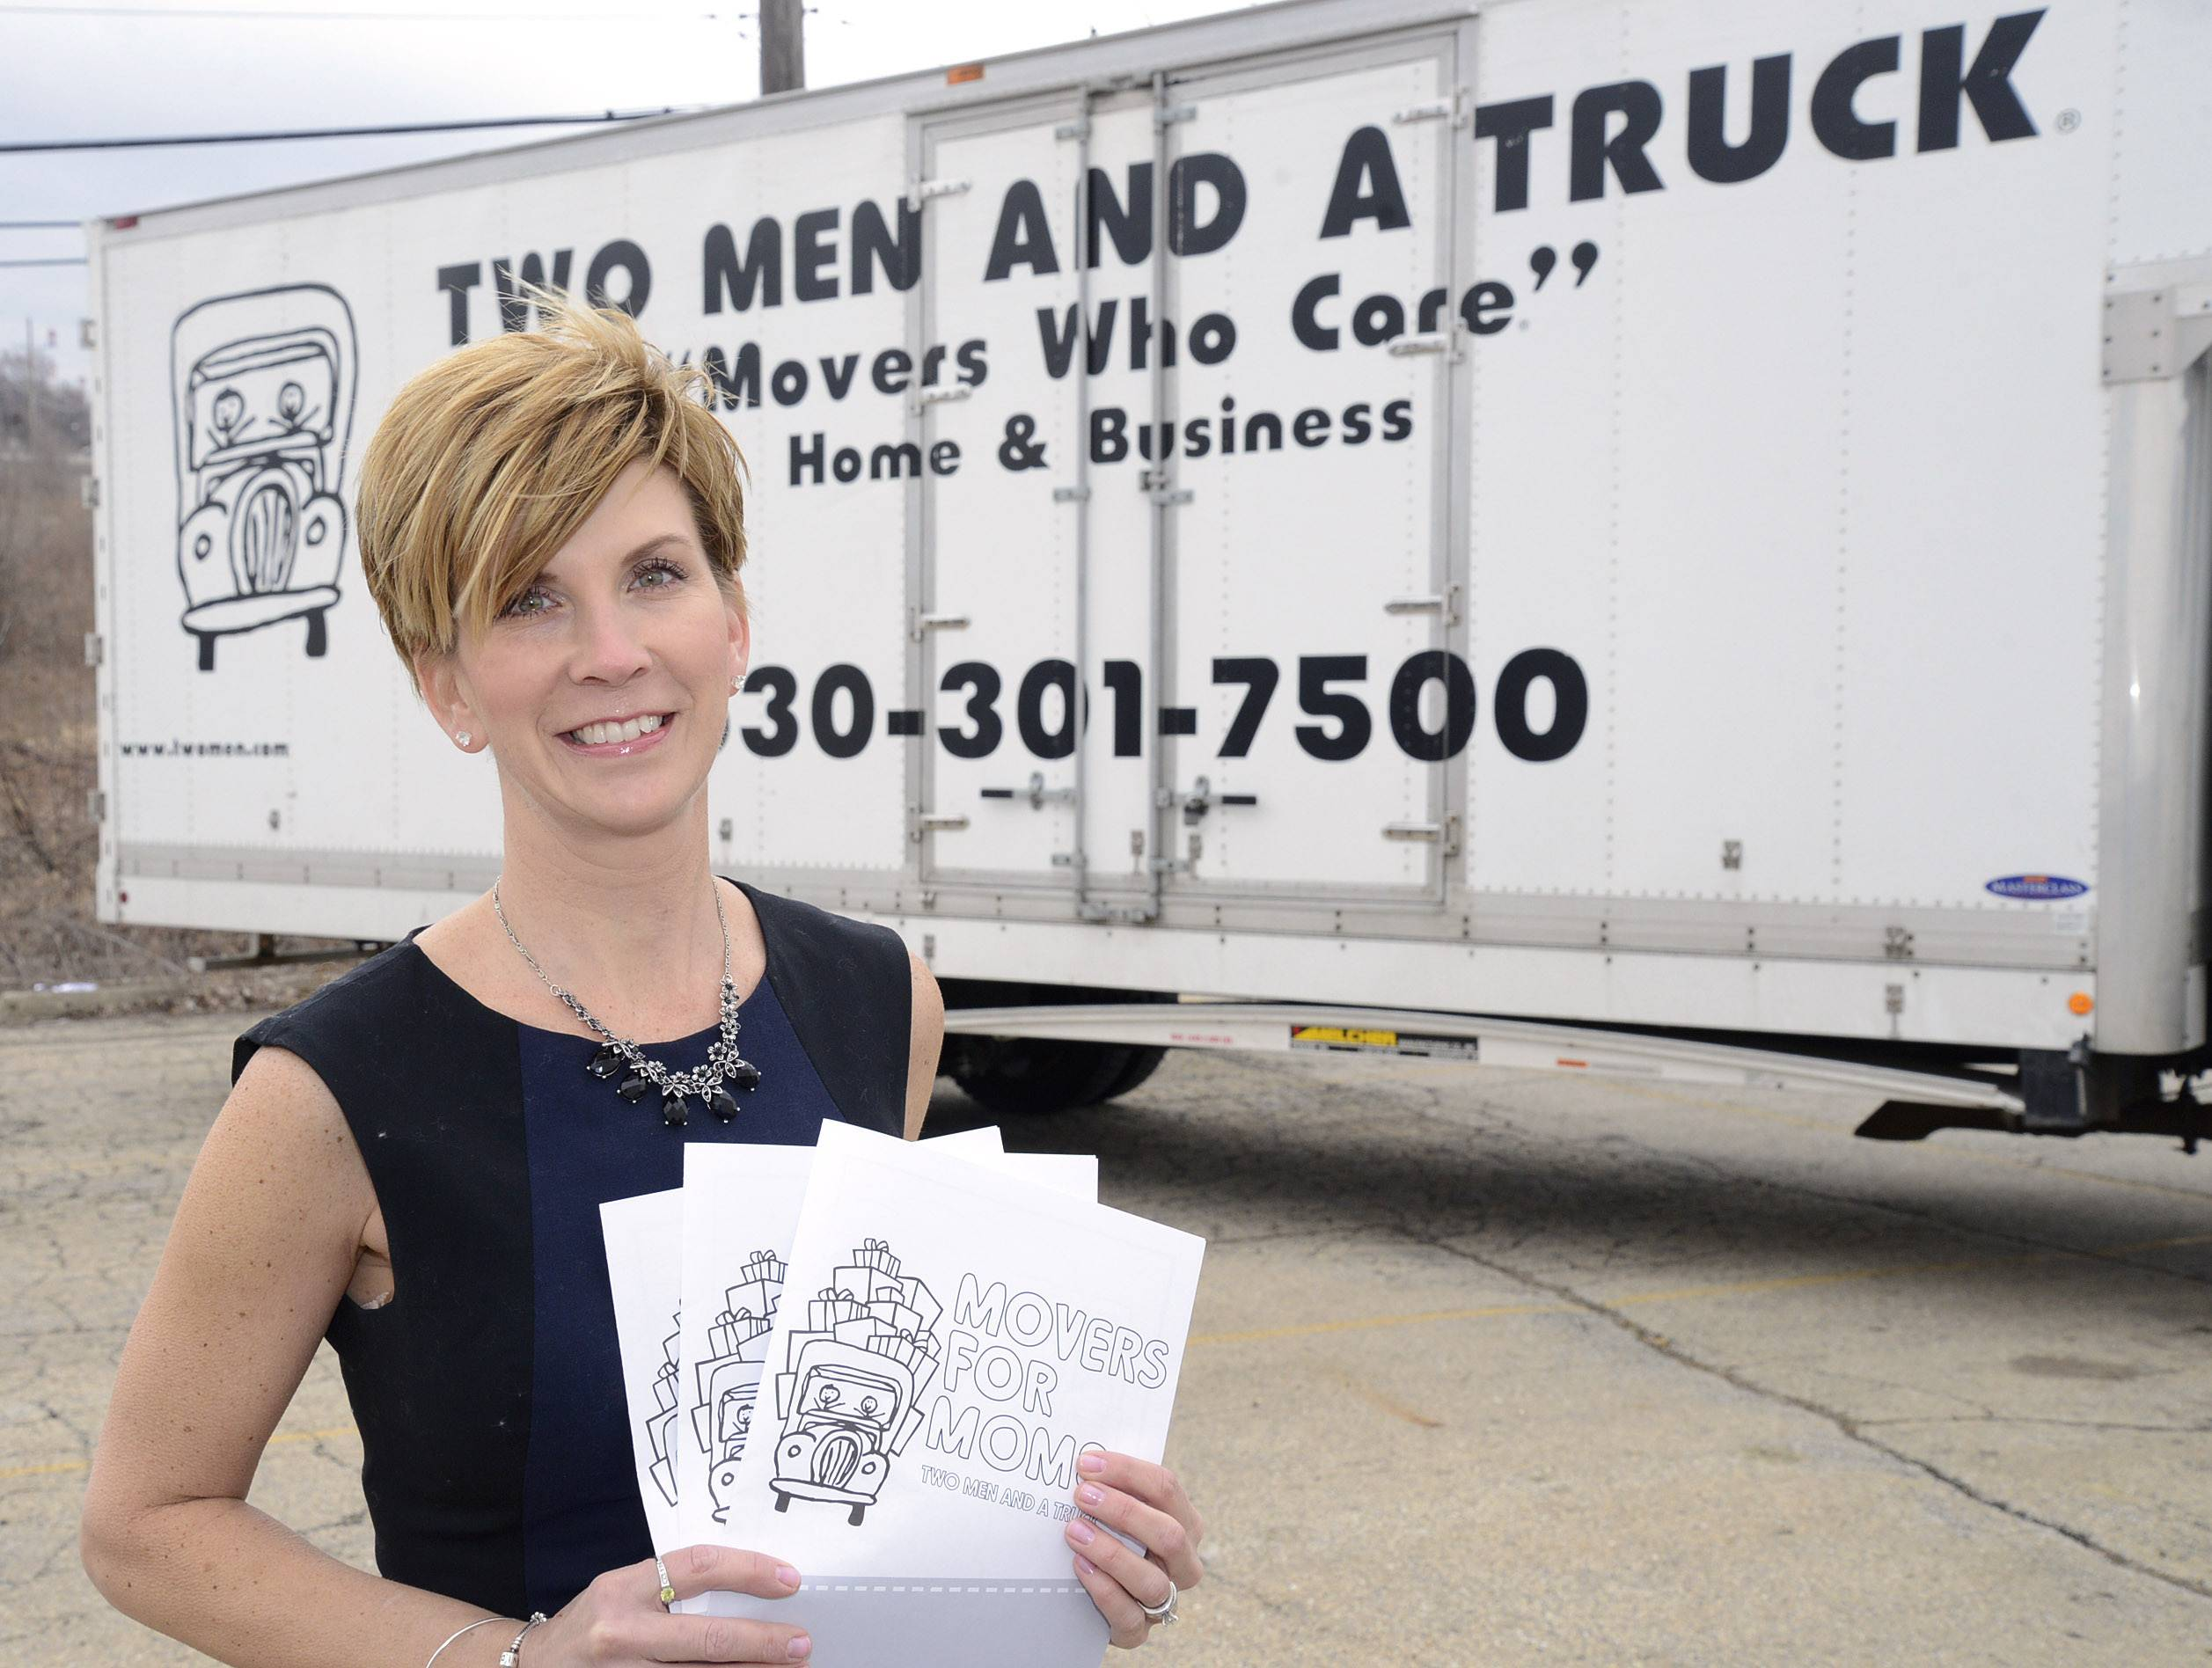 Wendy Petrusha, owner of Two Men And A Truck locations in North Aurora and Crystal Lake, is holding a donation drive for Mother's Day items for Lazarus House in St. Charles and Home of the Sparrow in McHenry. She has eight donation boxes in various locations to collect items.